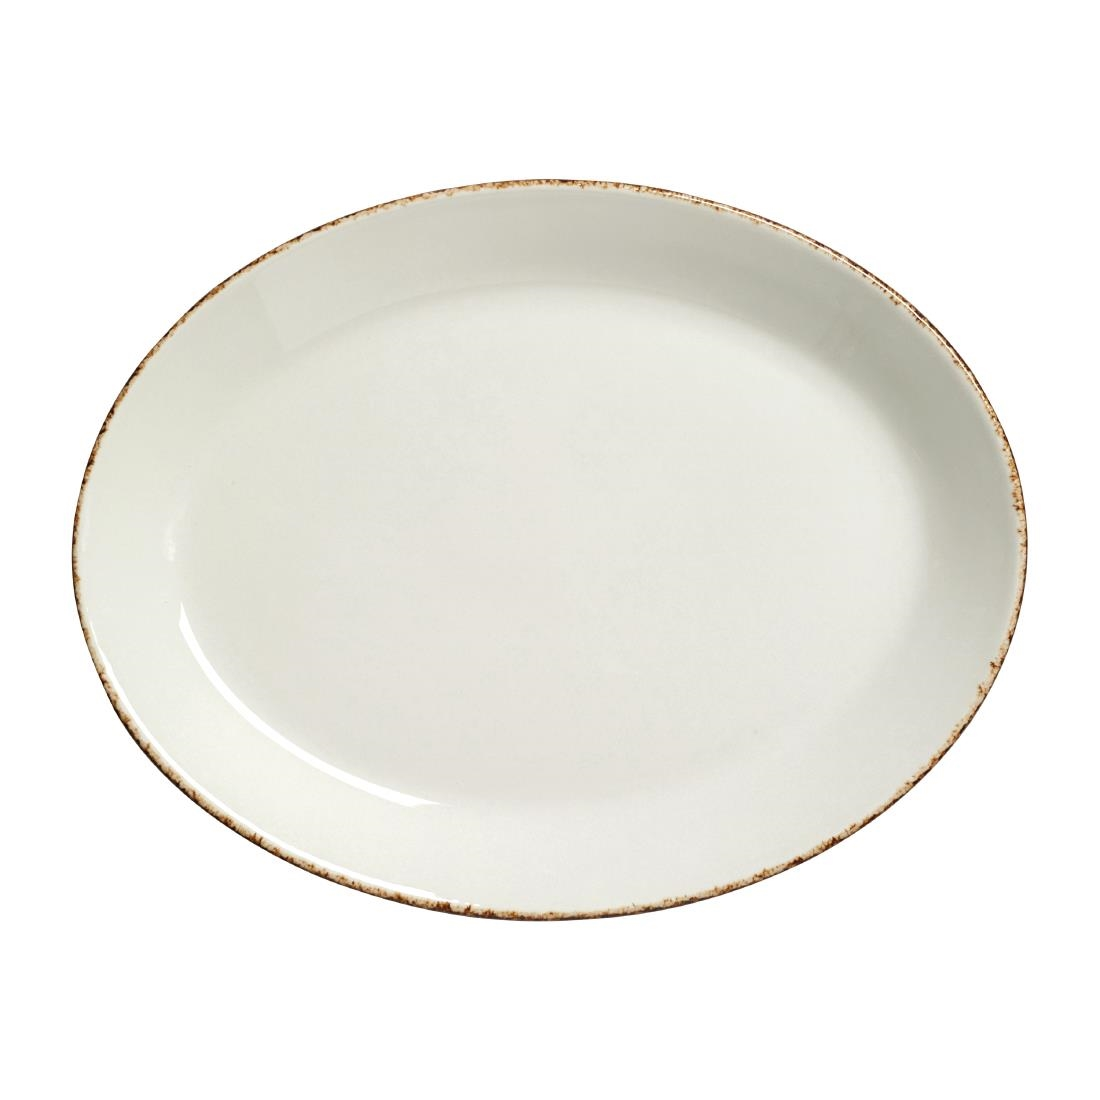 Steelite Brown Dapple Oval Coupe Plates 280mm Pack of 12